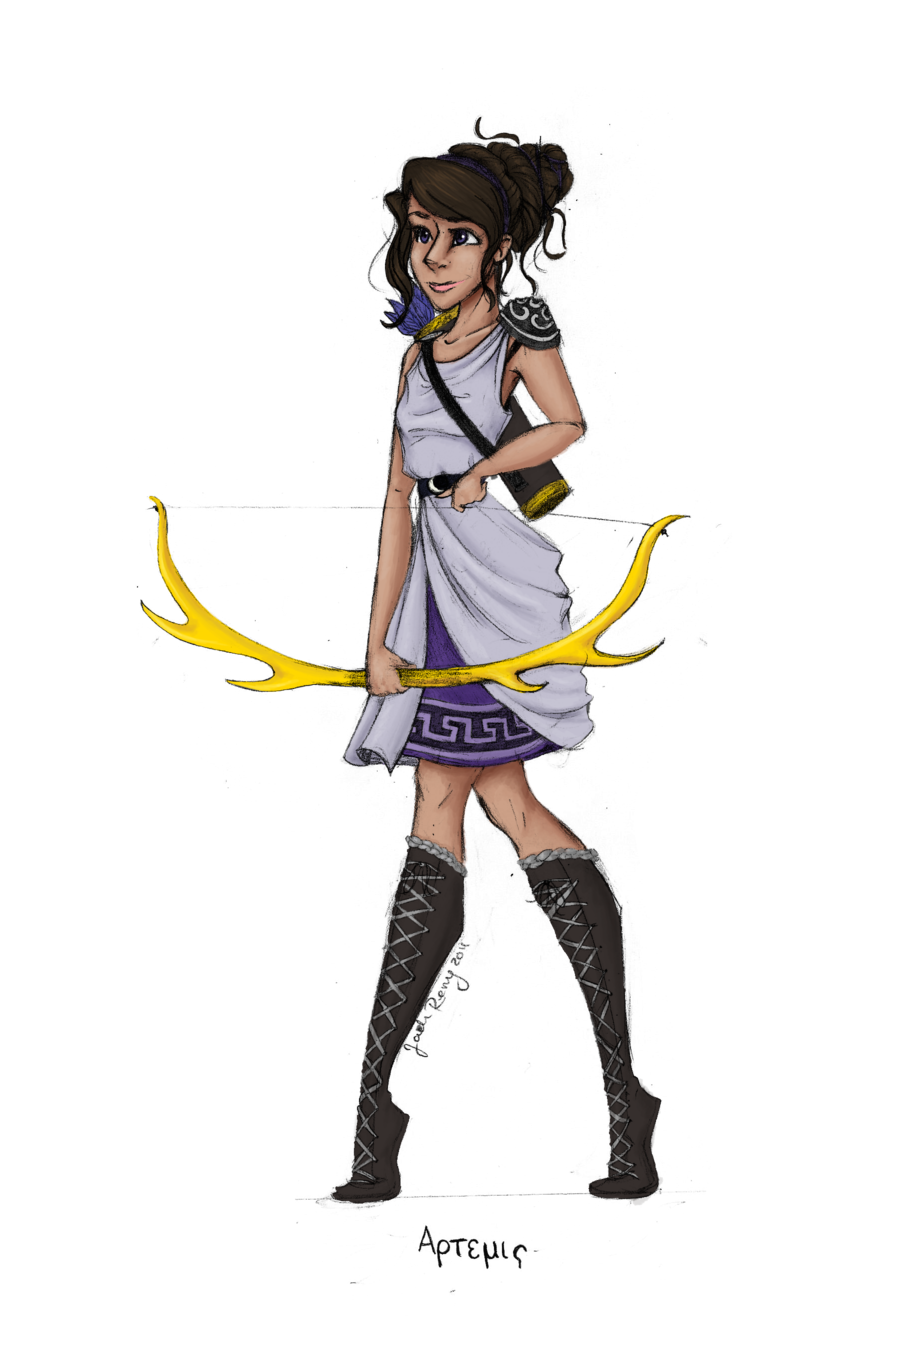 Goddess of the hunt the moon and is patron to the hunters if Artemis